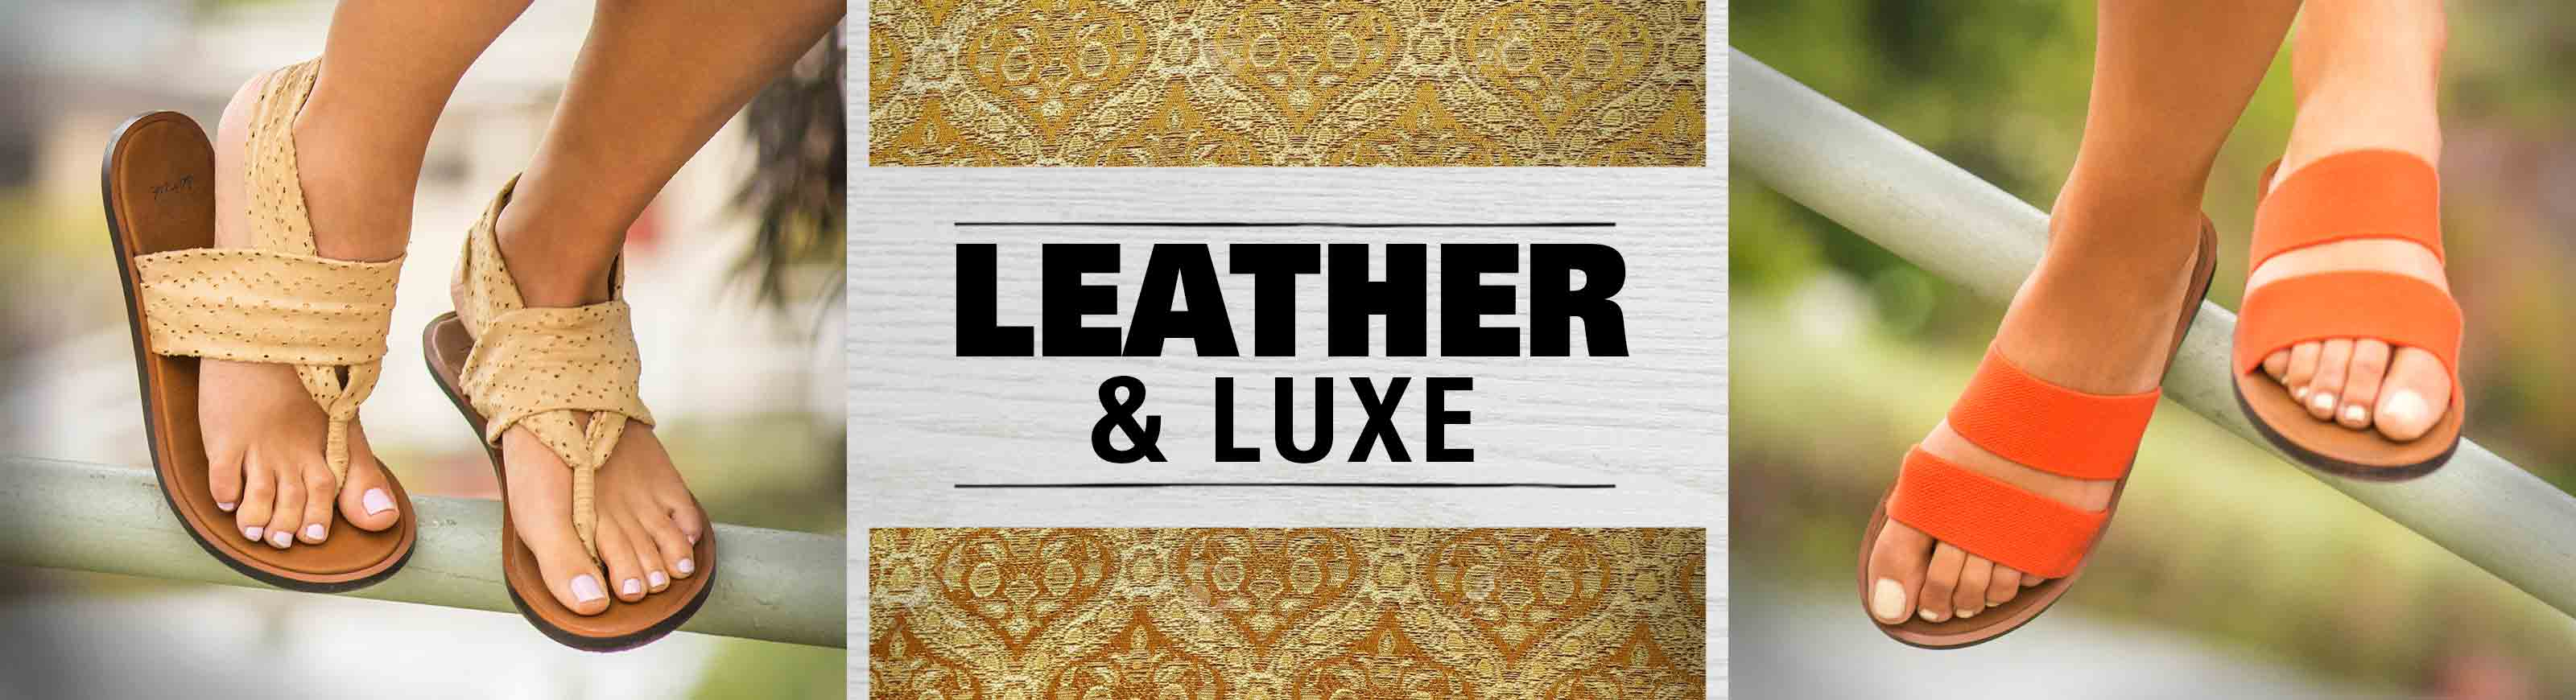 Leather and Lux Collection